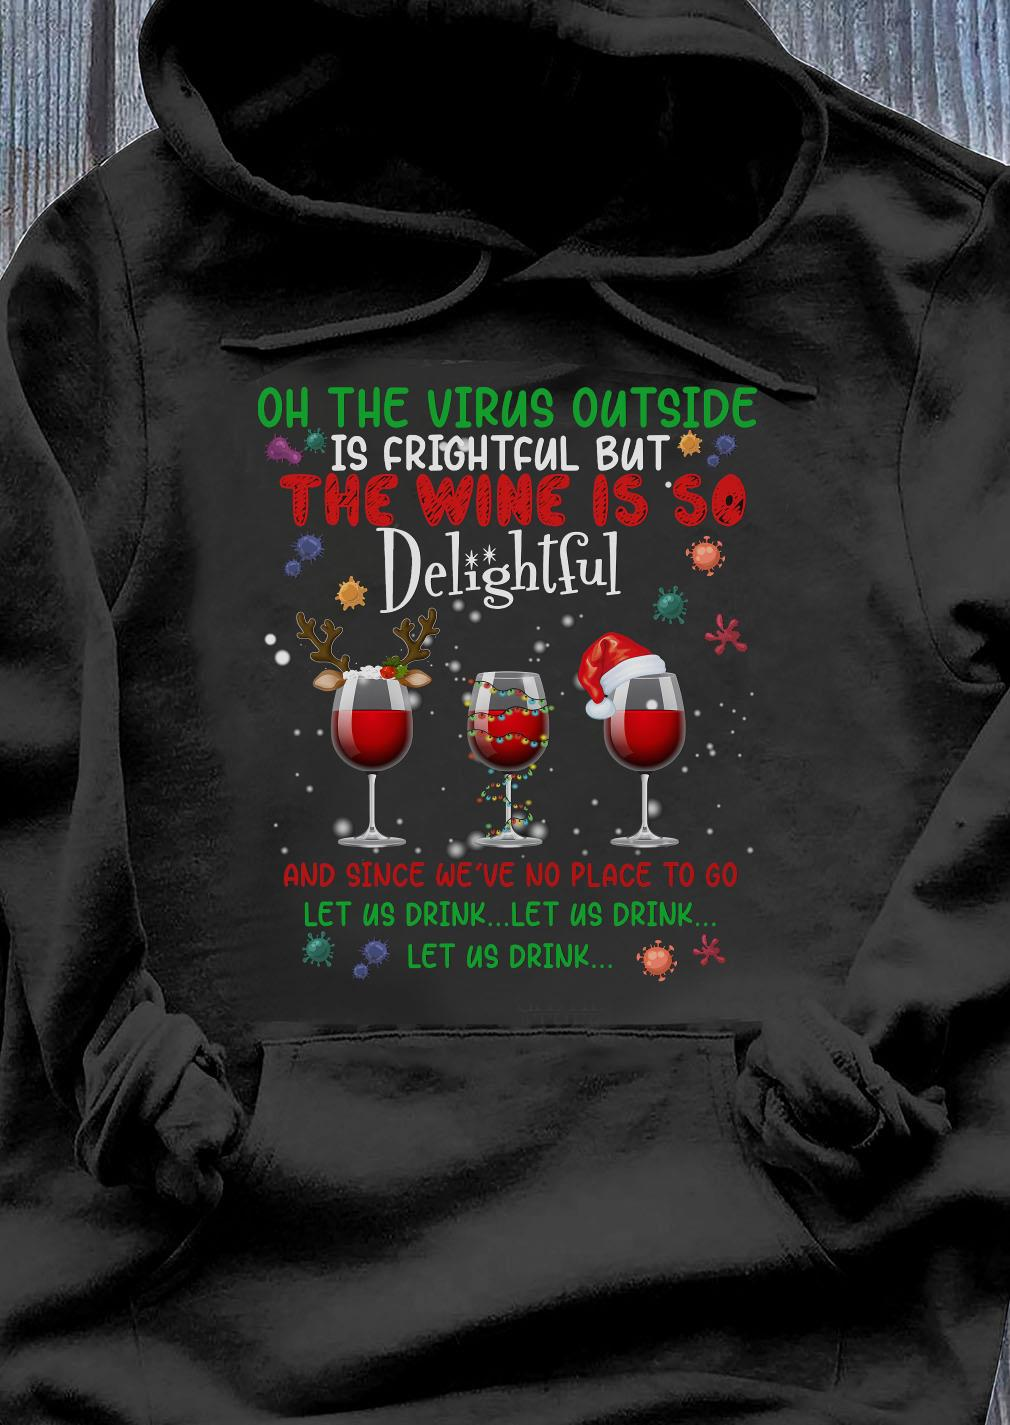 Oh the virus outside is frightful but the Wine is so Delightful and since we've no place to go let us drink let us drink Christmas sweater Hoodie